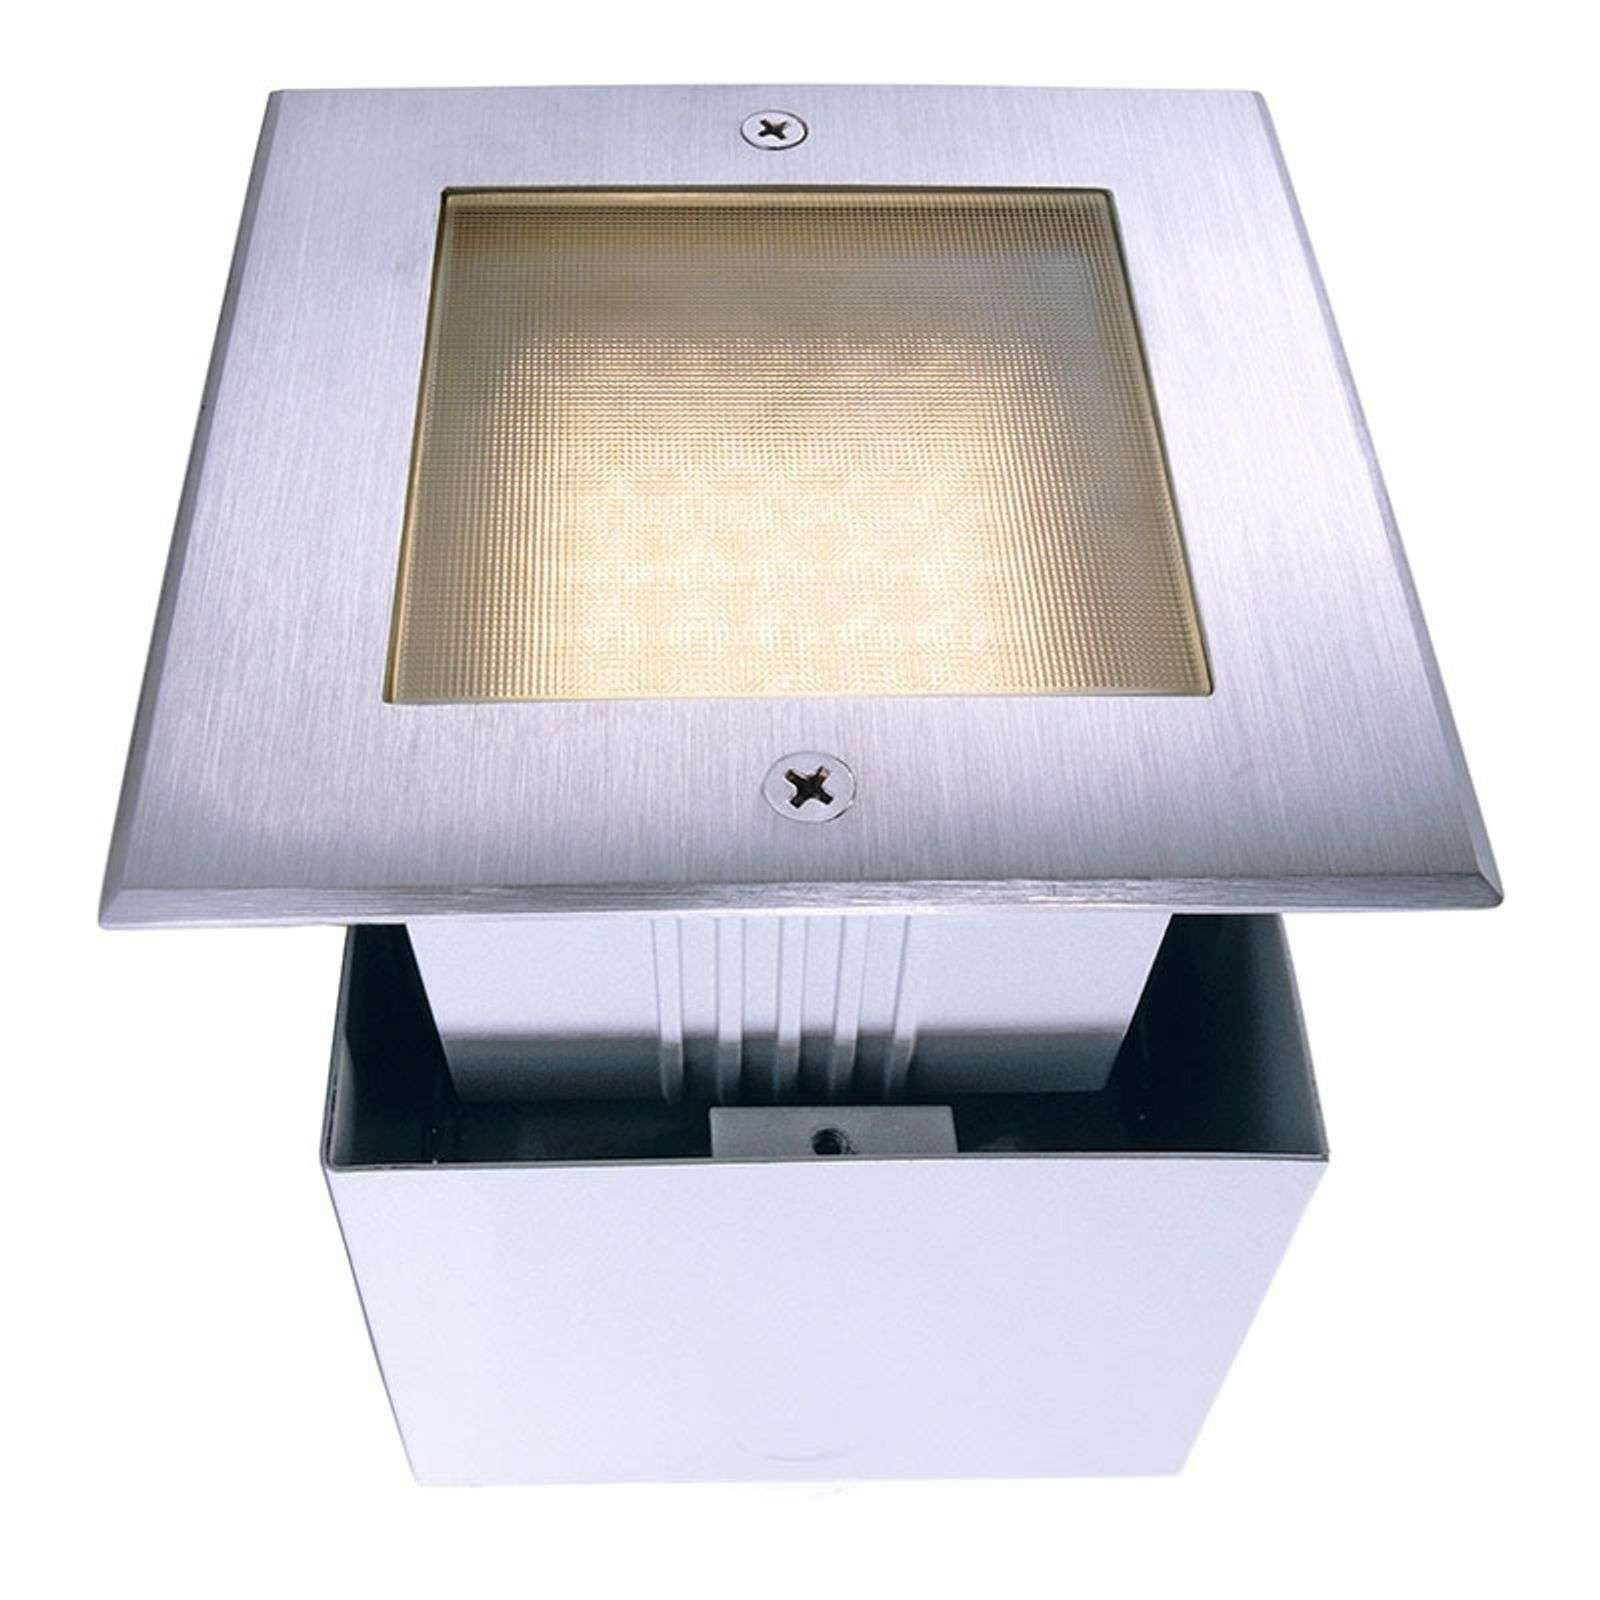 Led Grondspot Square Ii Warm Wit Avec Images Led Encastrable Spot Led Encastrable Spot Led